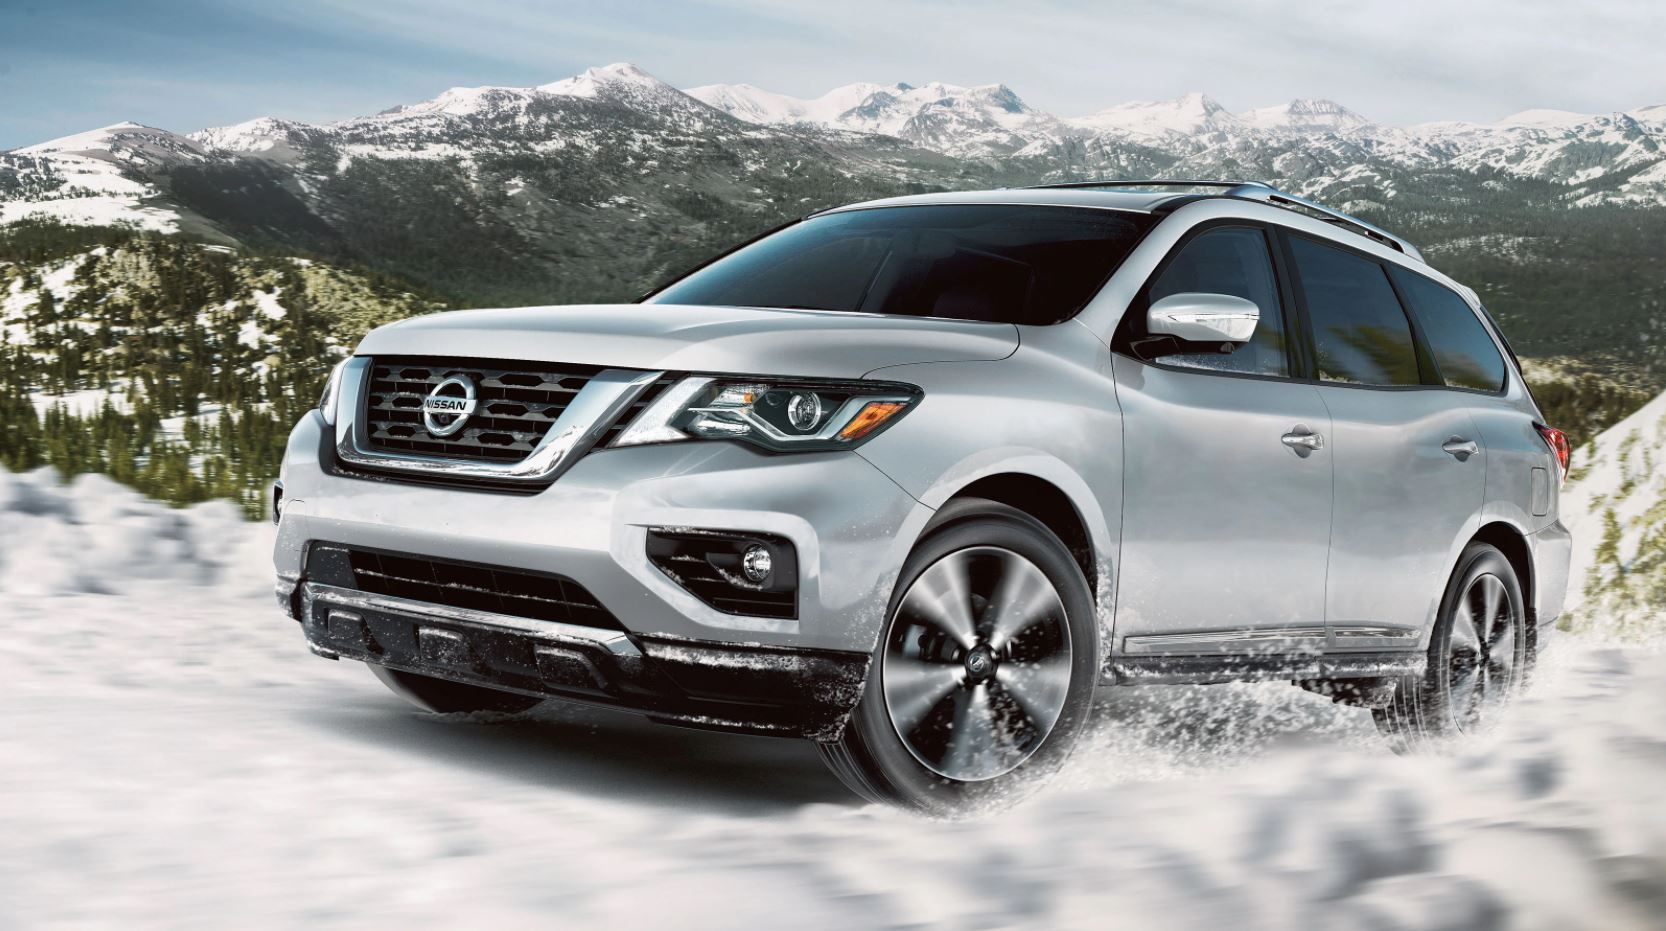 Buy, Lease, or Finance the 2020 Nissan Pathfinder near Orlando FL